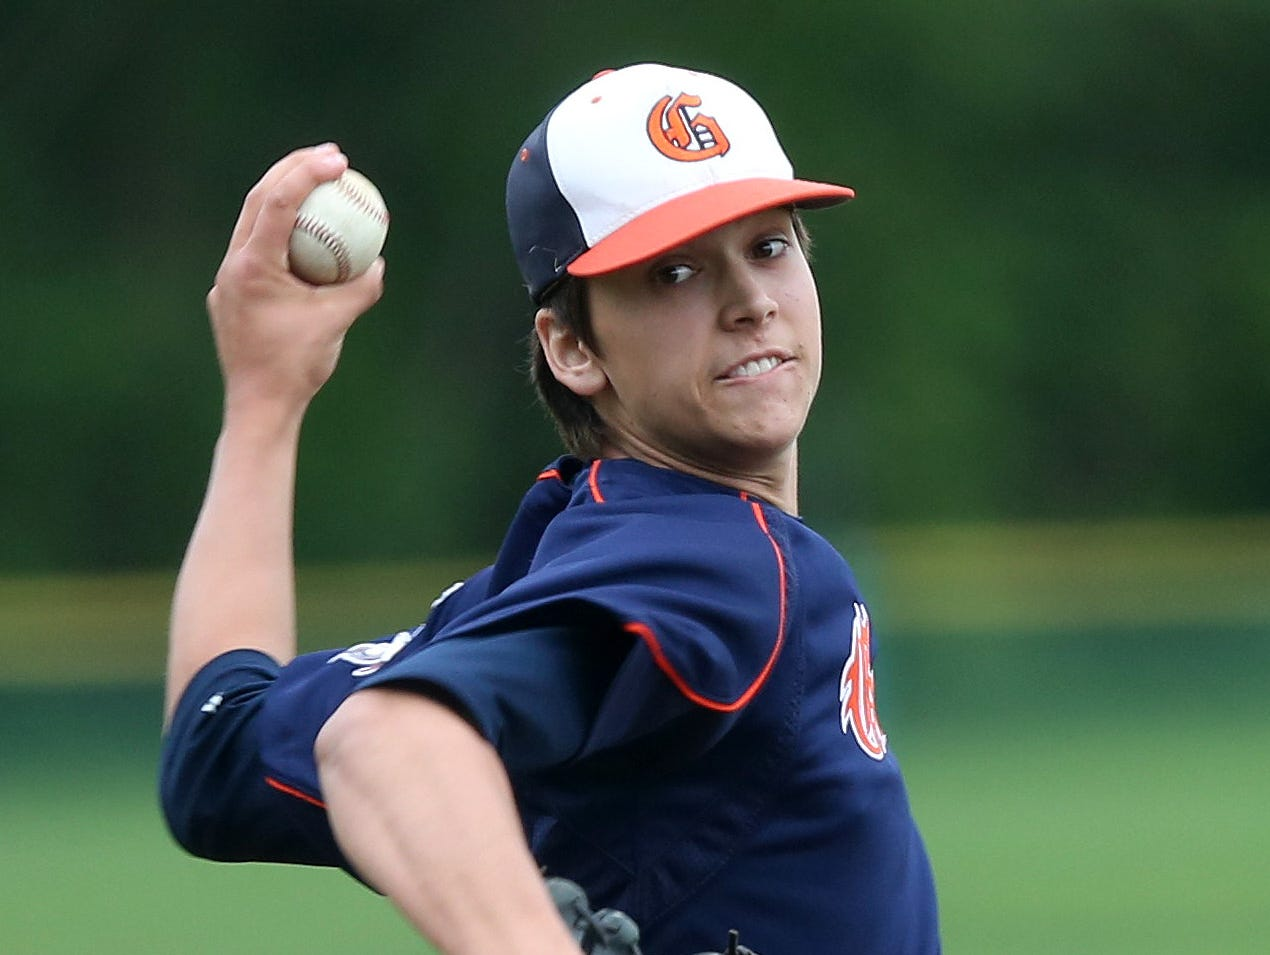 Horace Greeley's Brandon Neeck pitching against White Plains during a Section 1 boys baseball playoff game at White Plains High School May 21, 2016.